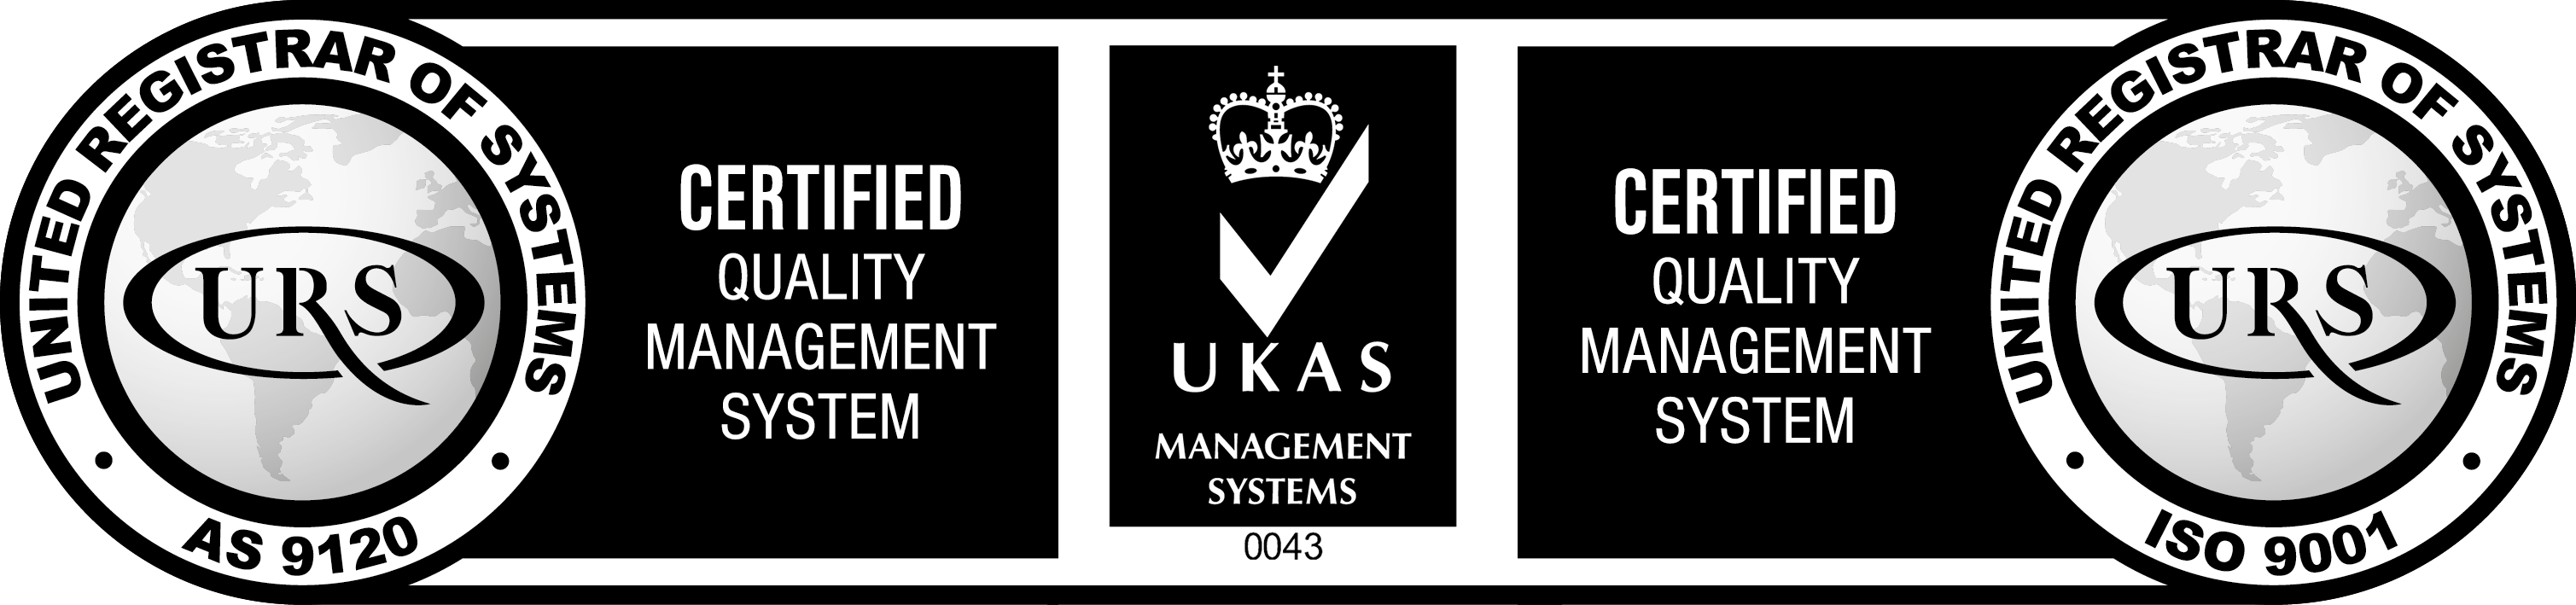 AS9120B Quality Management Standard Achieved